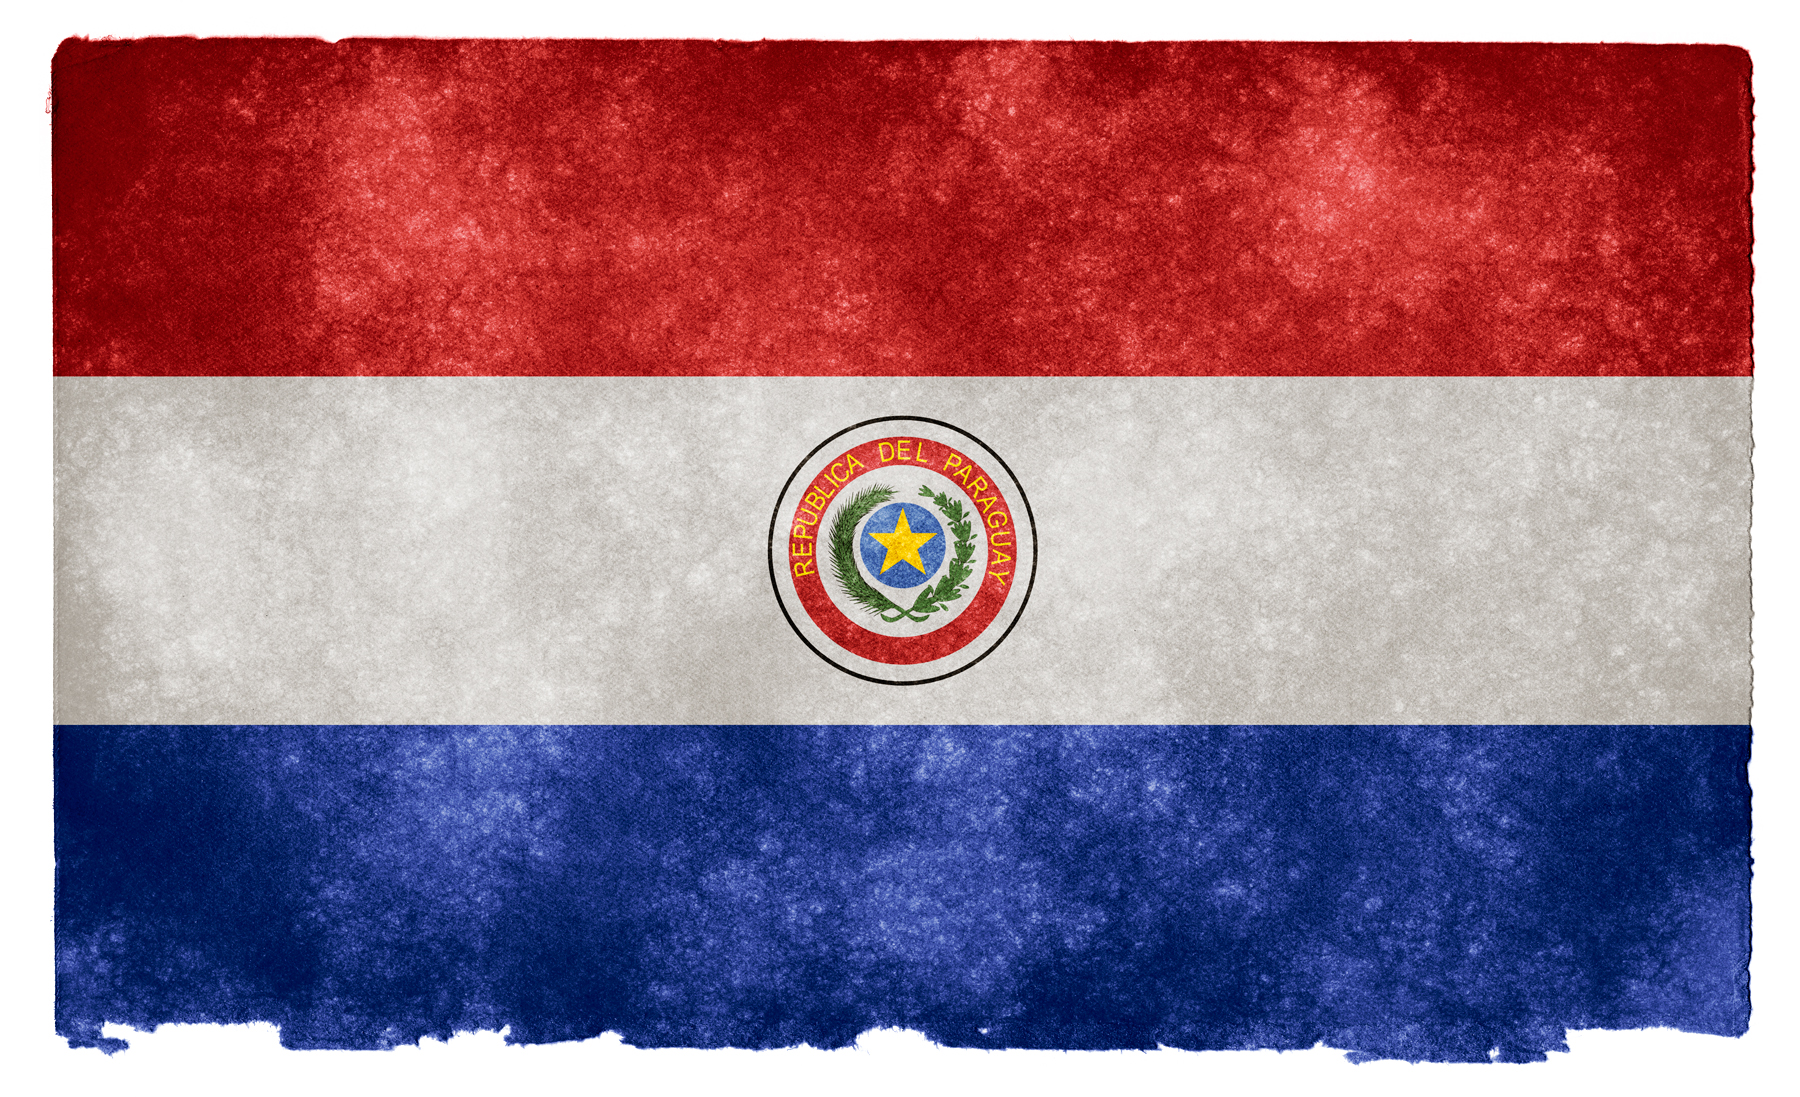 Free photo: Paraguay Grunge Flag - Picture, Photo, Pride - Free ...